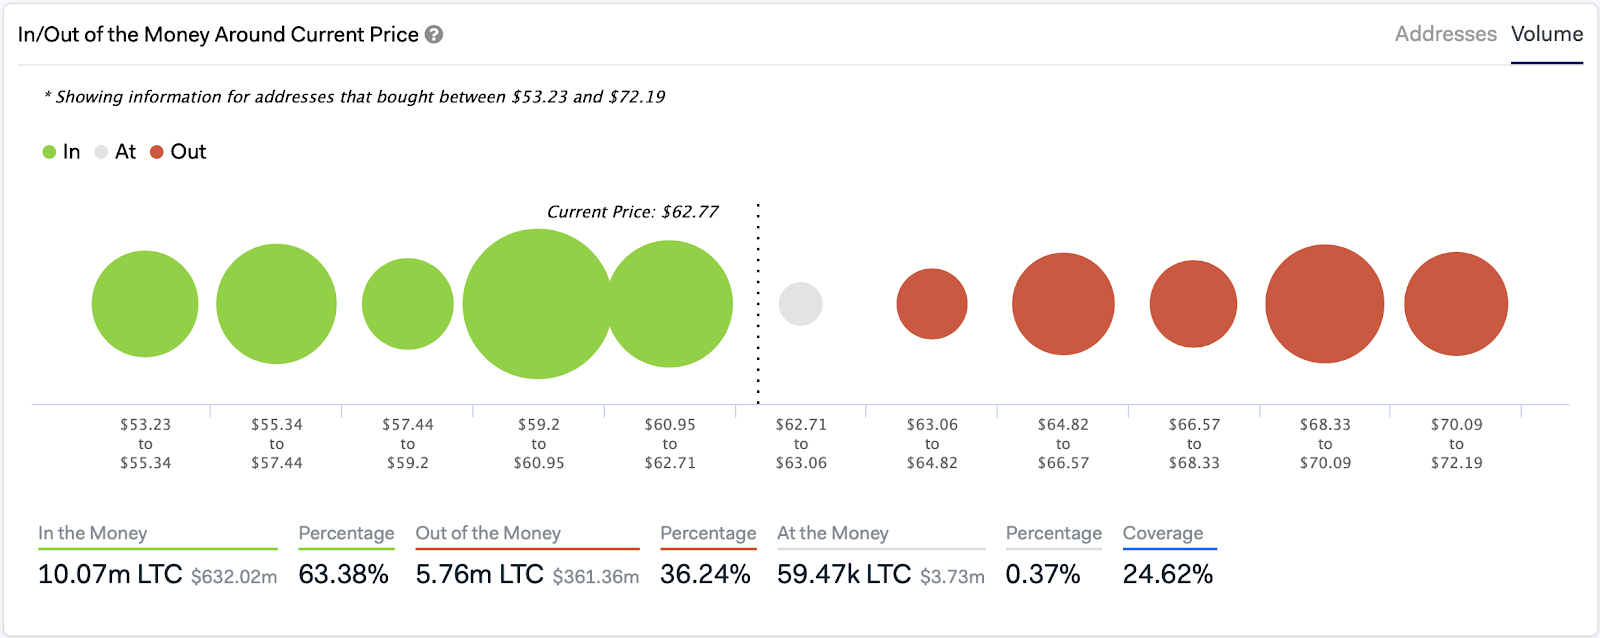 Litecoin In/Out of the Money Around Current Price. Source: IntoTheBlock